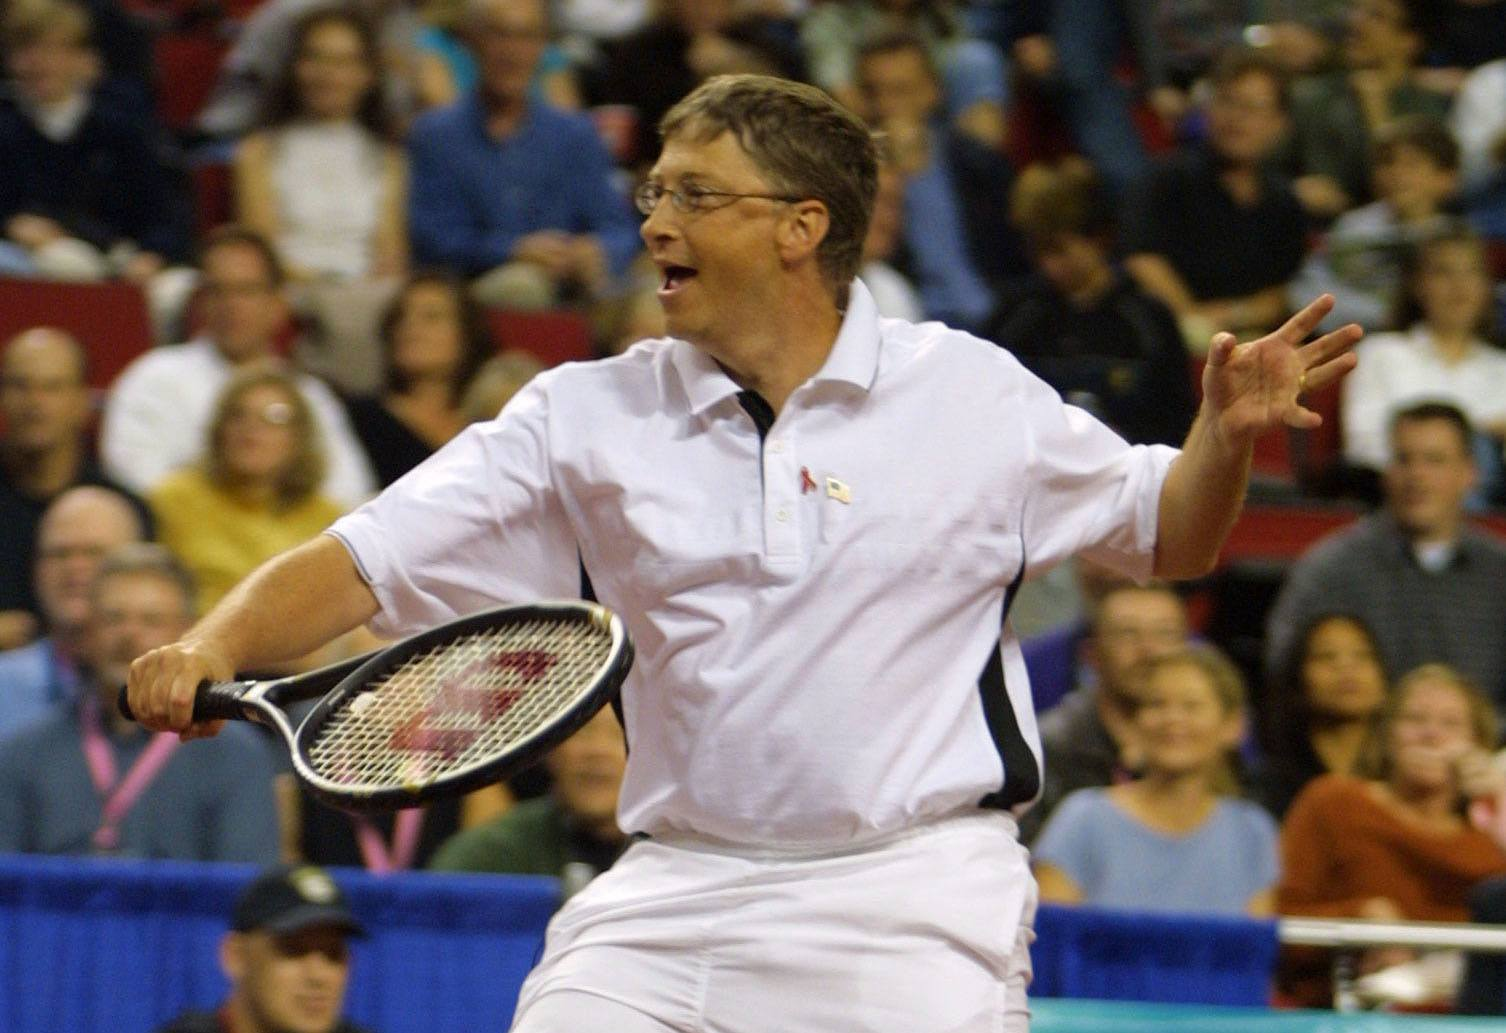 Bill Gates playing tennis